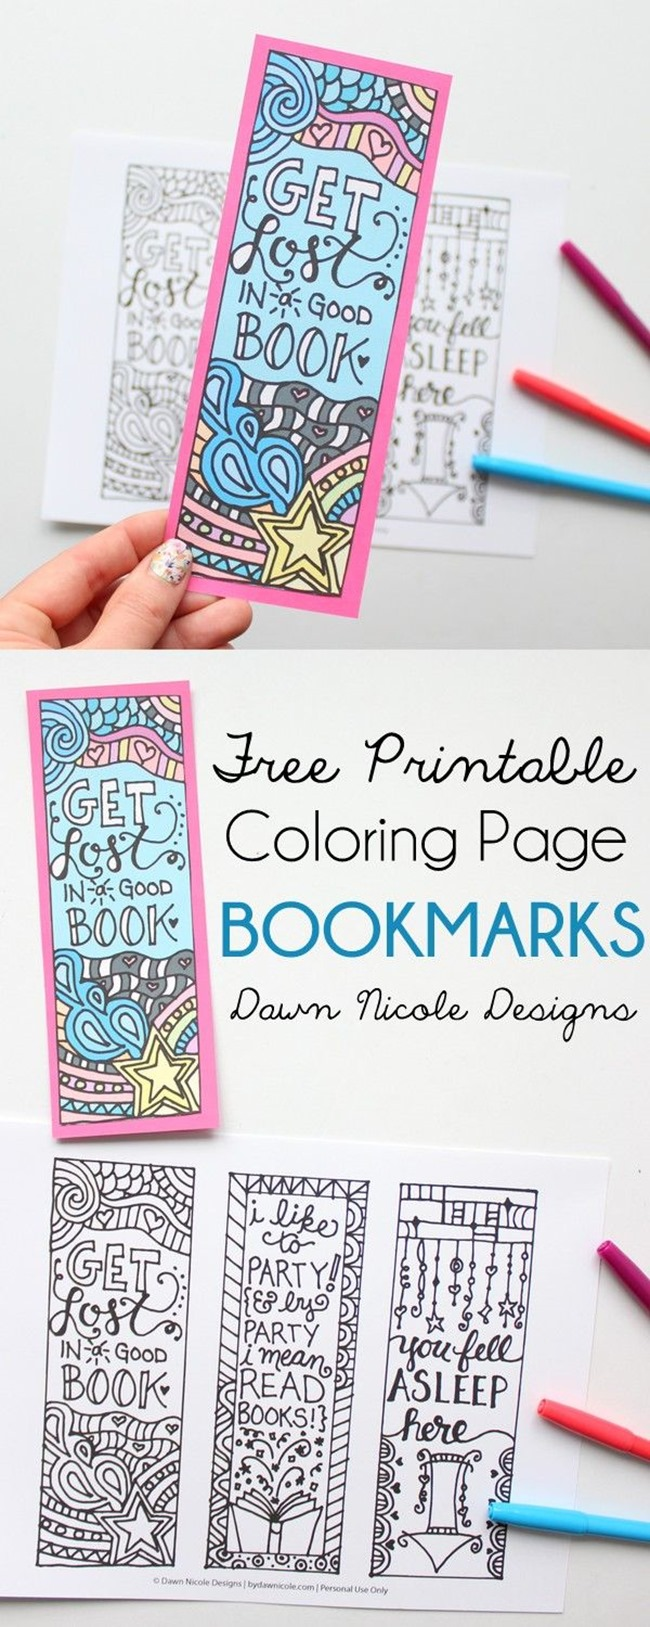 Free Printable Coloring Pages For Adults 12 More Designs